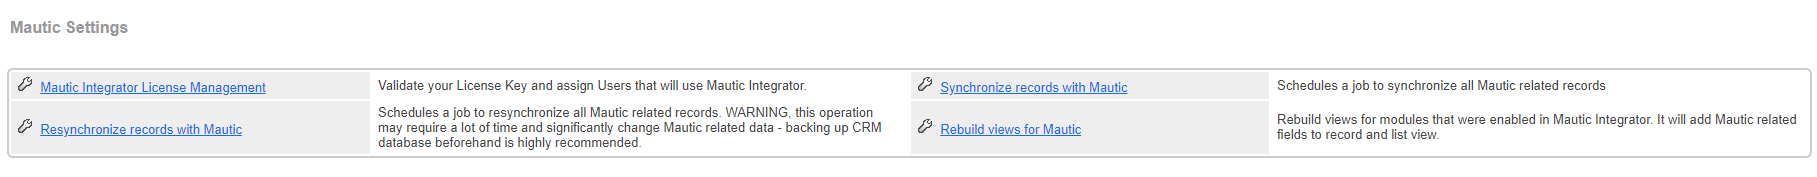 CRM - Administration - Mautic Settings Panel.png